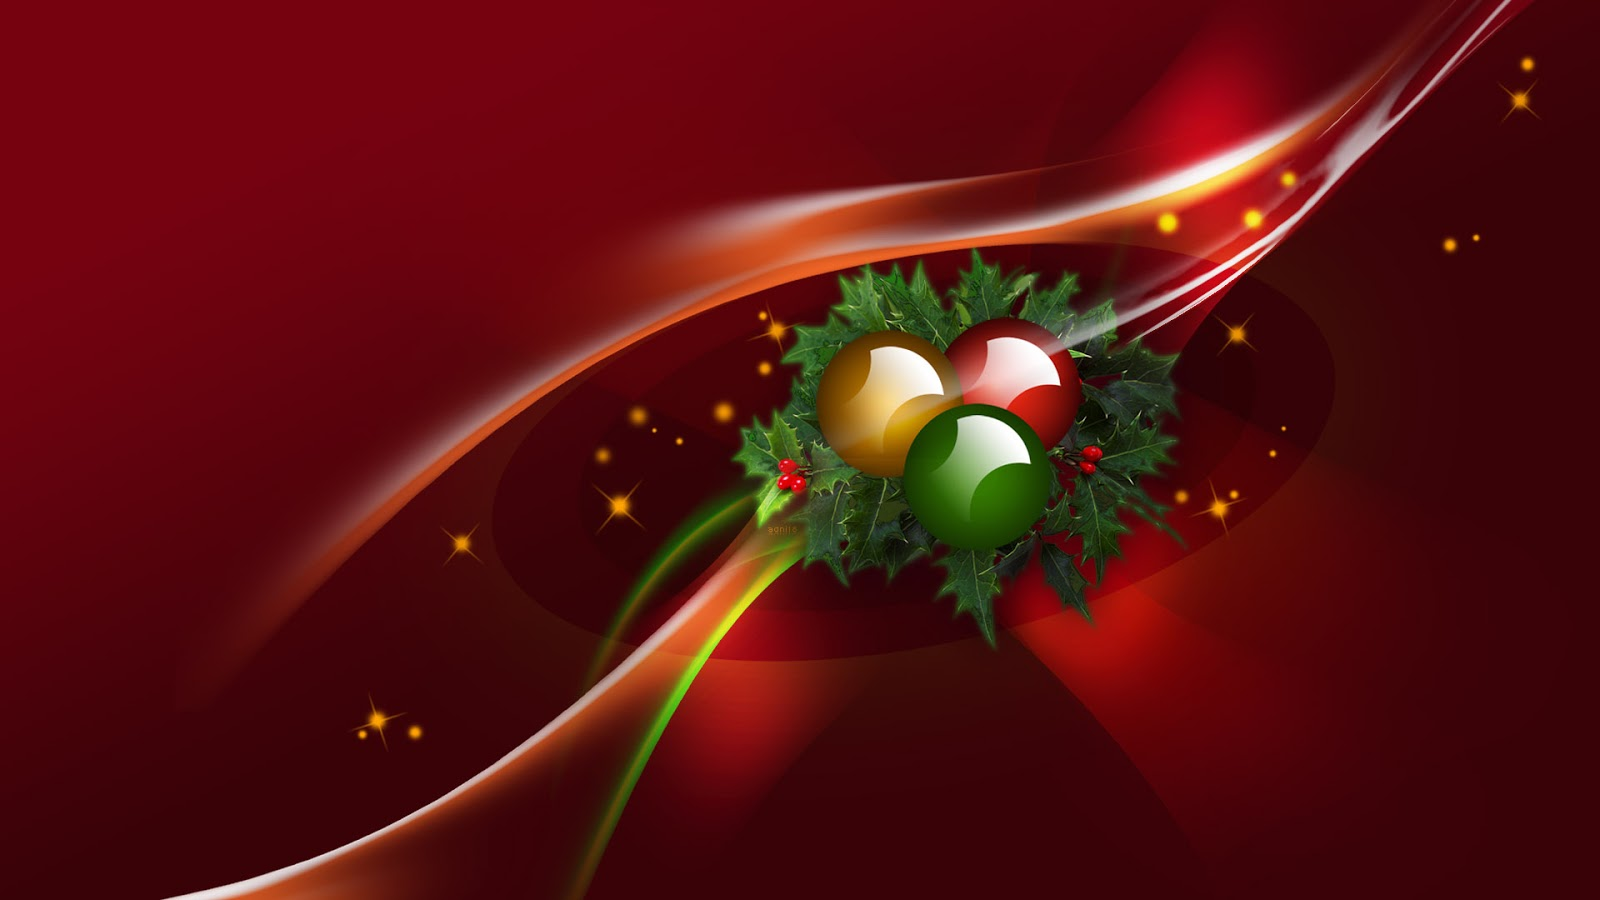 Widescreen hd wallpapers for christmas 2012 part 1 everything about powerpoint wallpapers - Holiday wallpaper hd ...